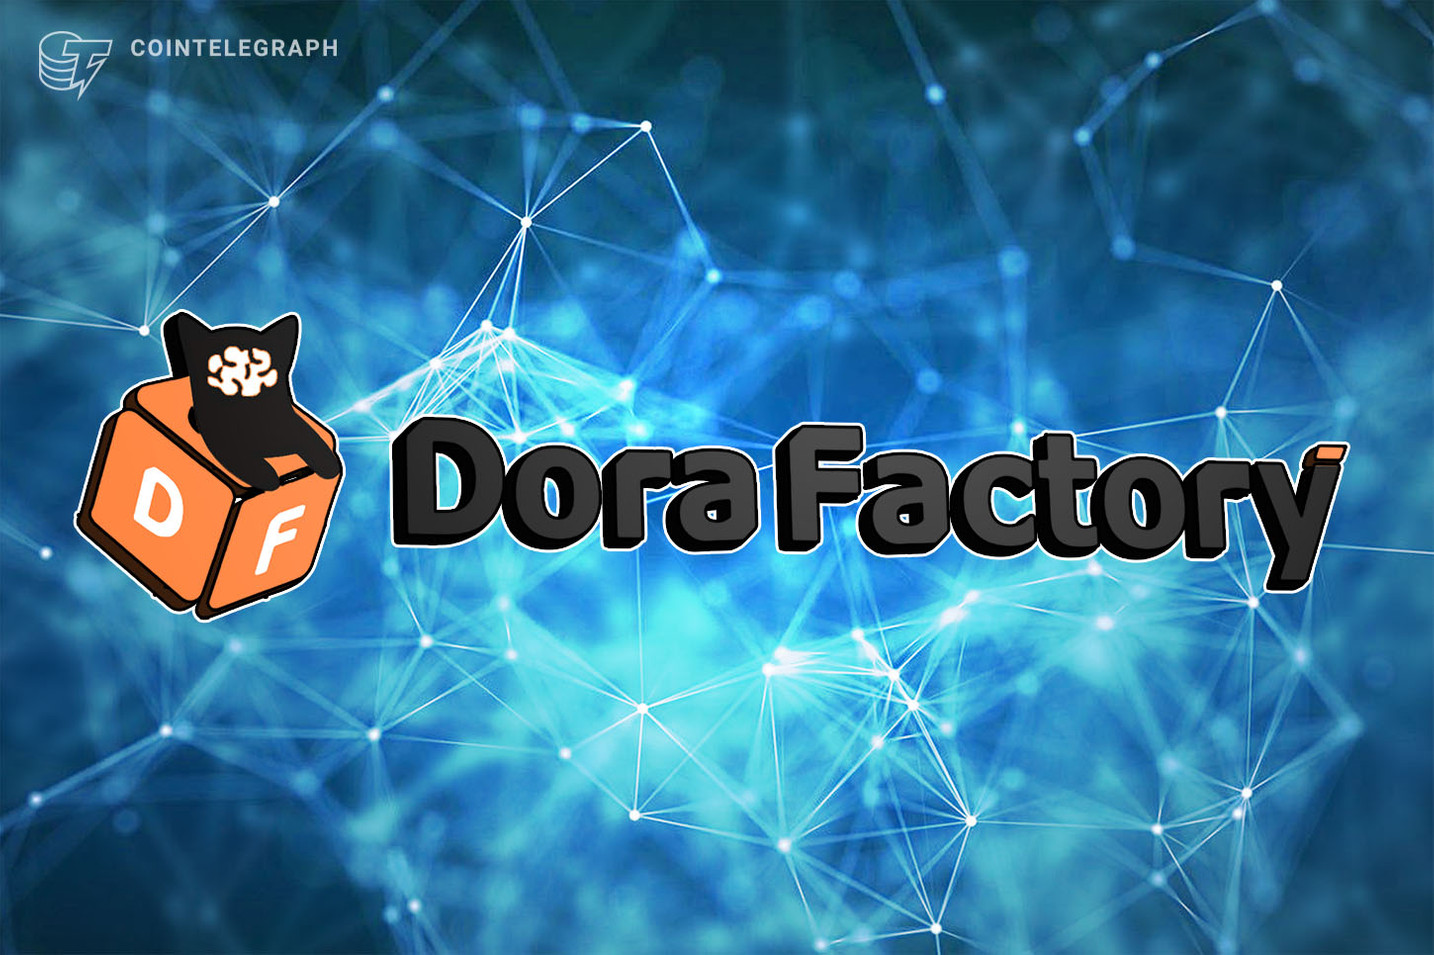 DAO-as-a-Service infrastructure Dora Factory closed seed funding